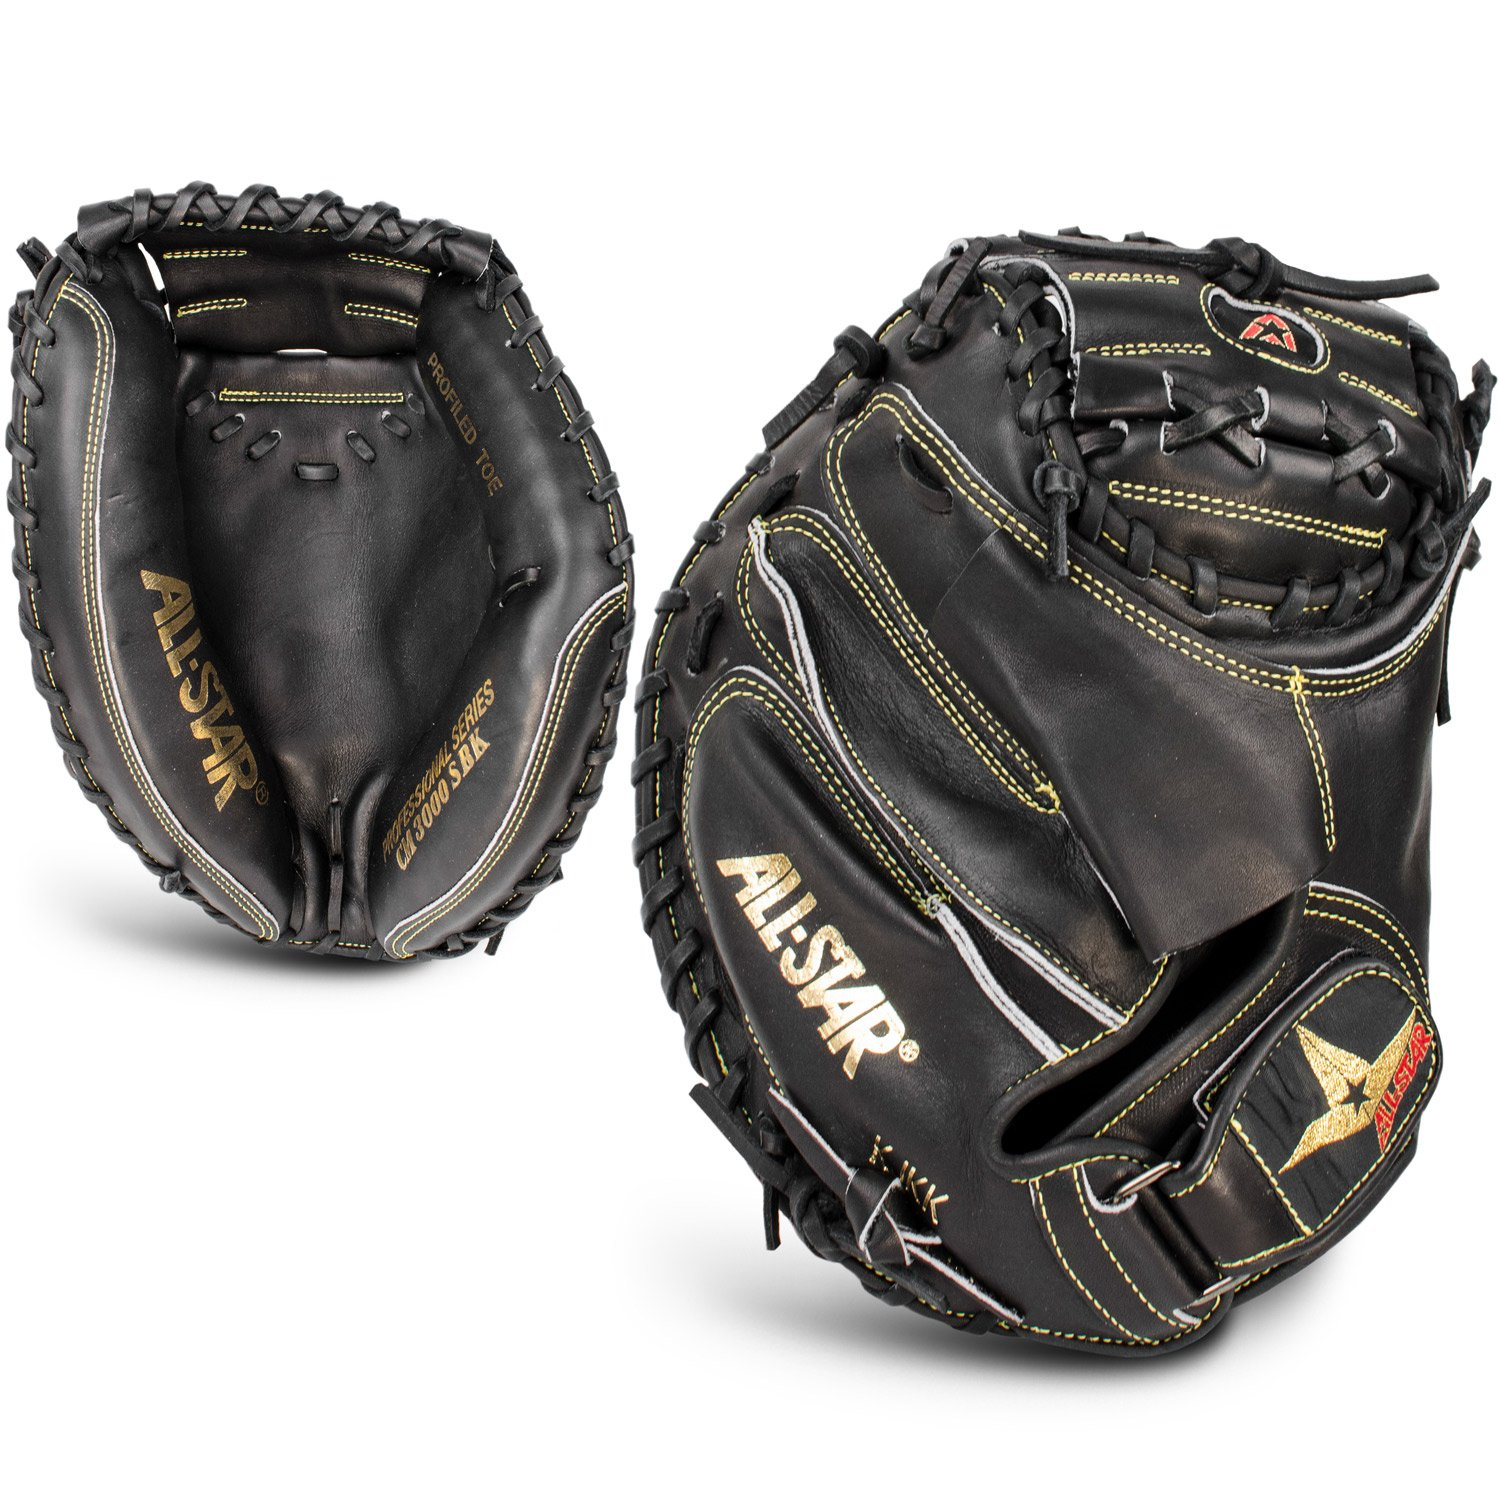 All Star Pro Elite Catchers Baseball Gloves Closed Black 35 Inch Right Hand by All Star